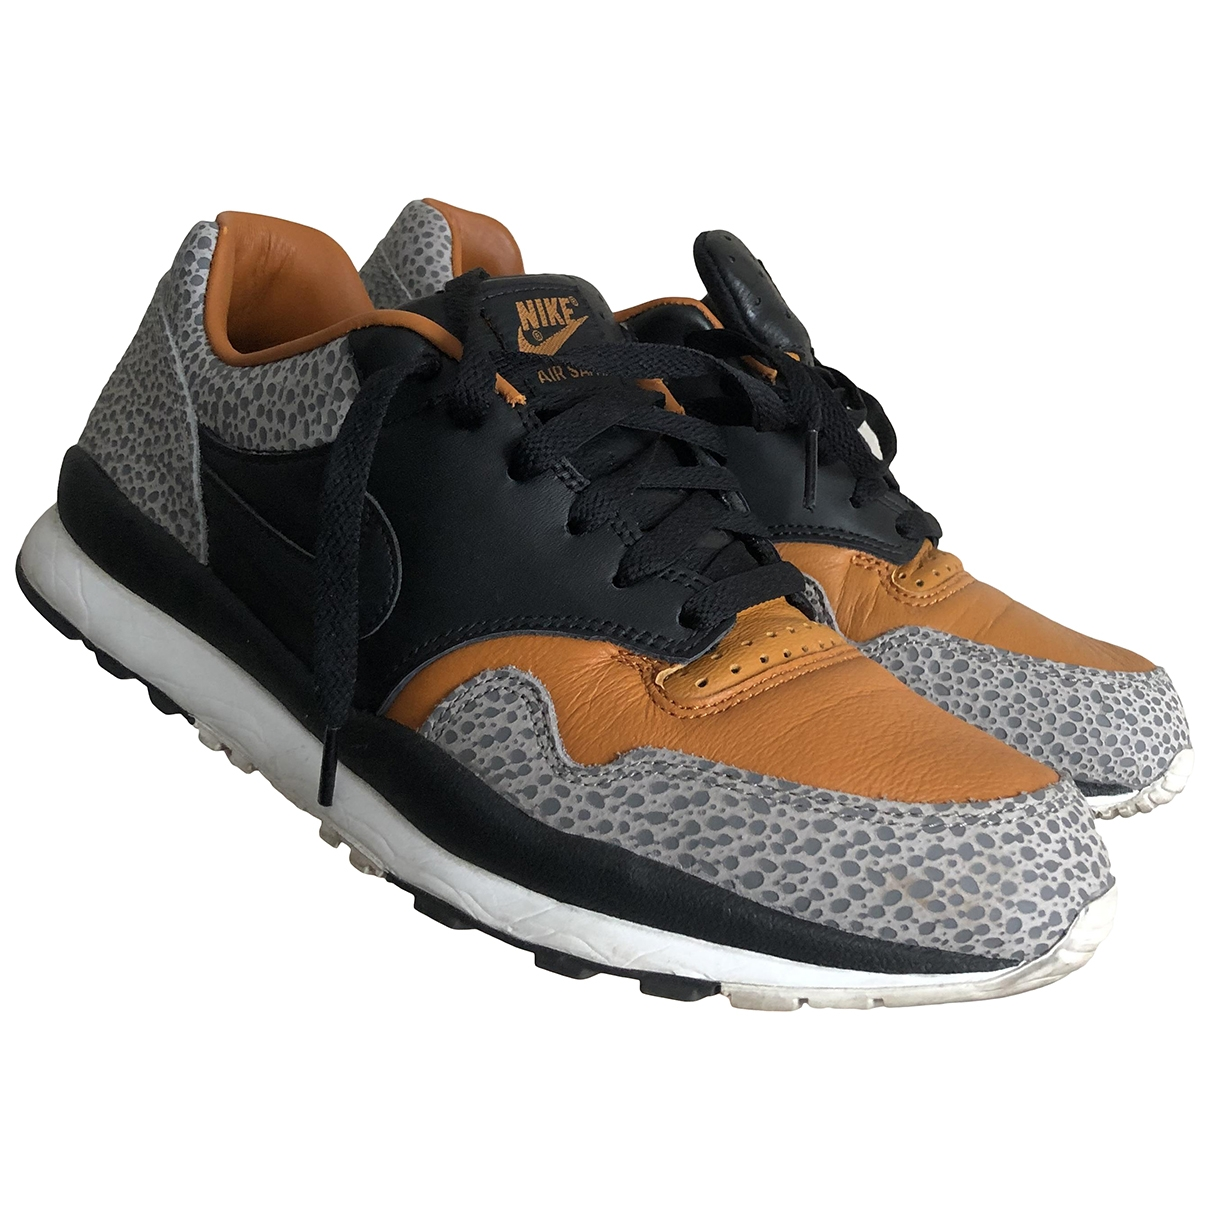 Nike - Baskets Air Safari pour homme en cuir - multicolore